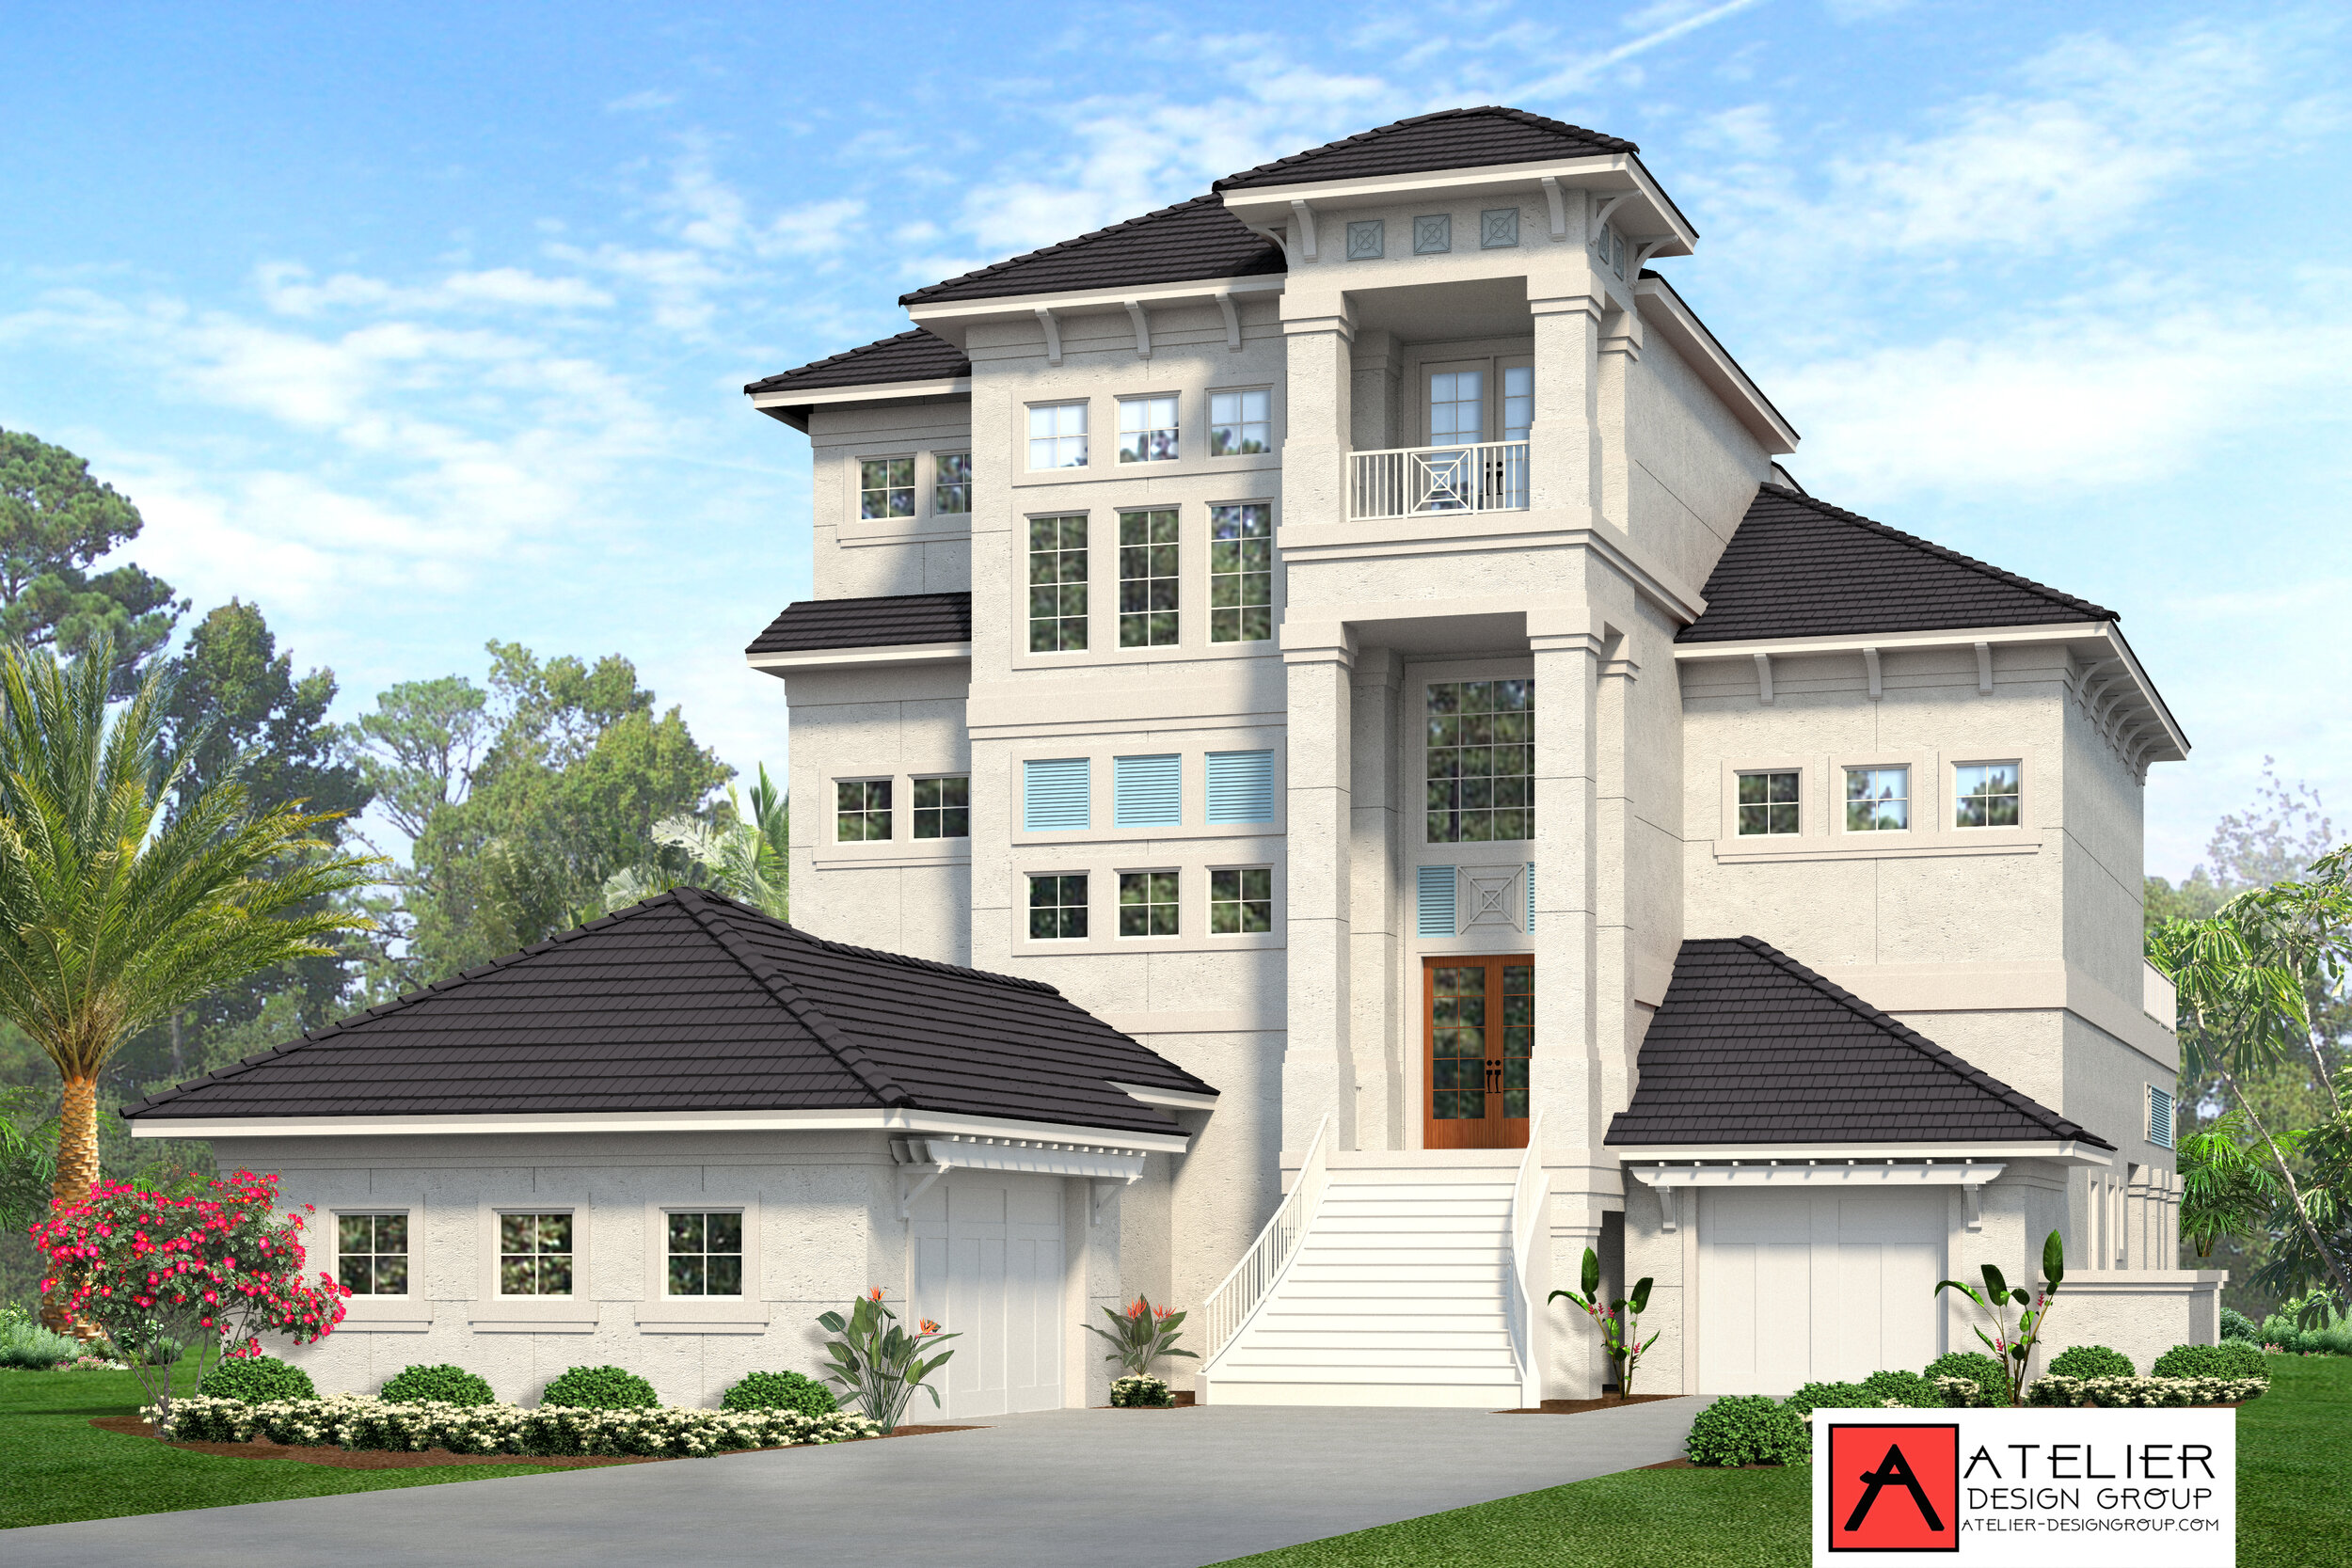 Atelier Design Group are the designers for this Classy Coastal Residence coming to the Ocean Hammock area of Palm Coast, FL. We have mixed our beach style with the classical timeless design. Our goal was to create a design to last a life time. .In the permit process now. Construction photos to follow soon.